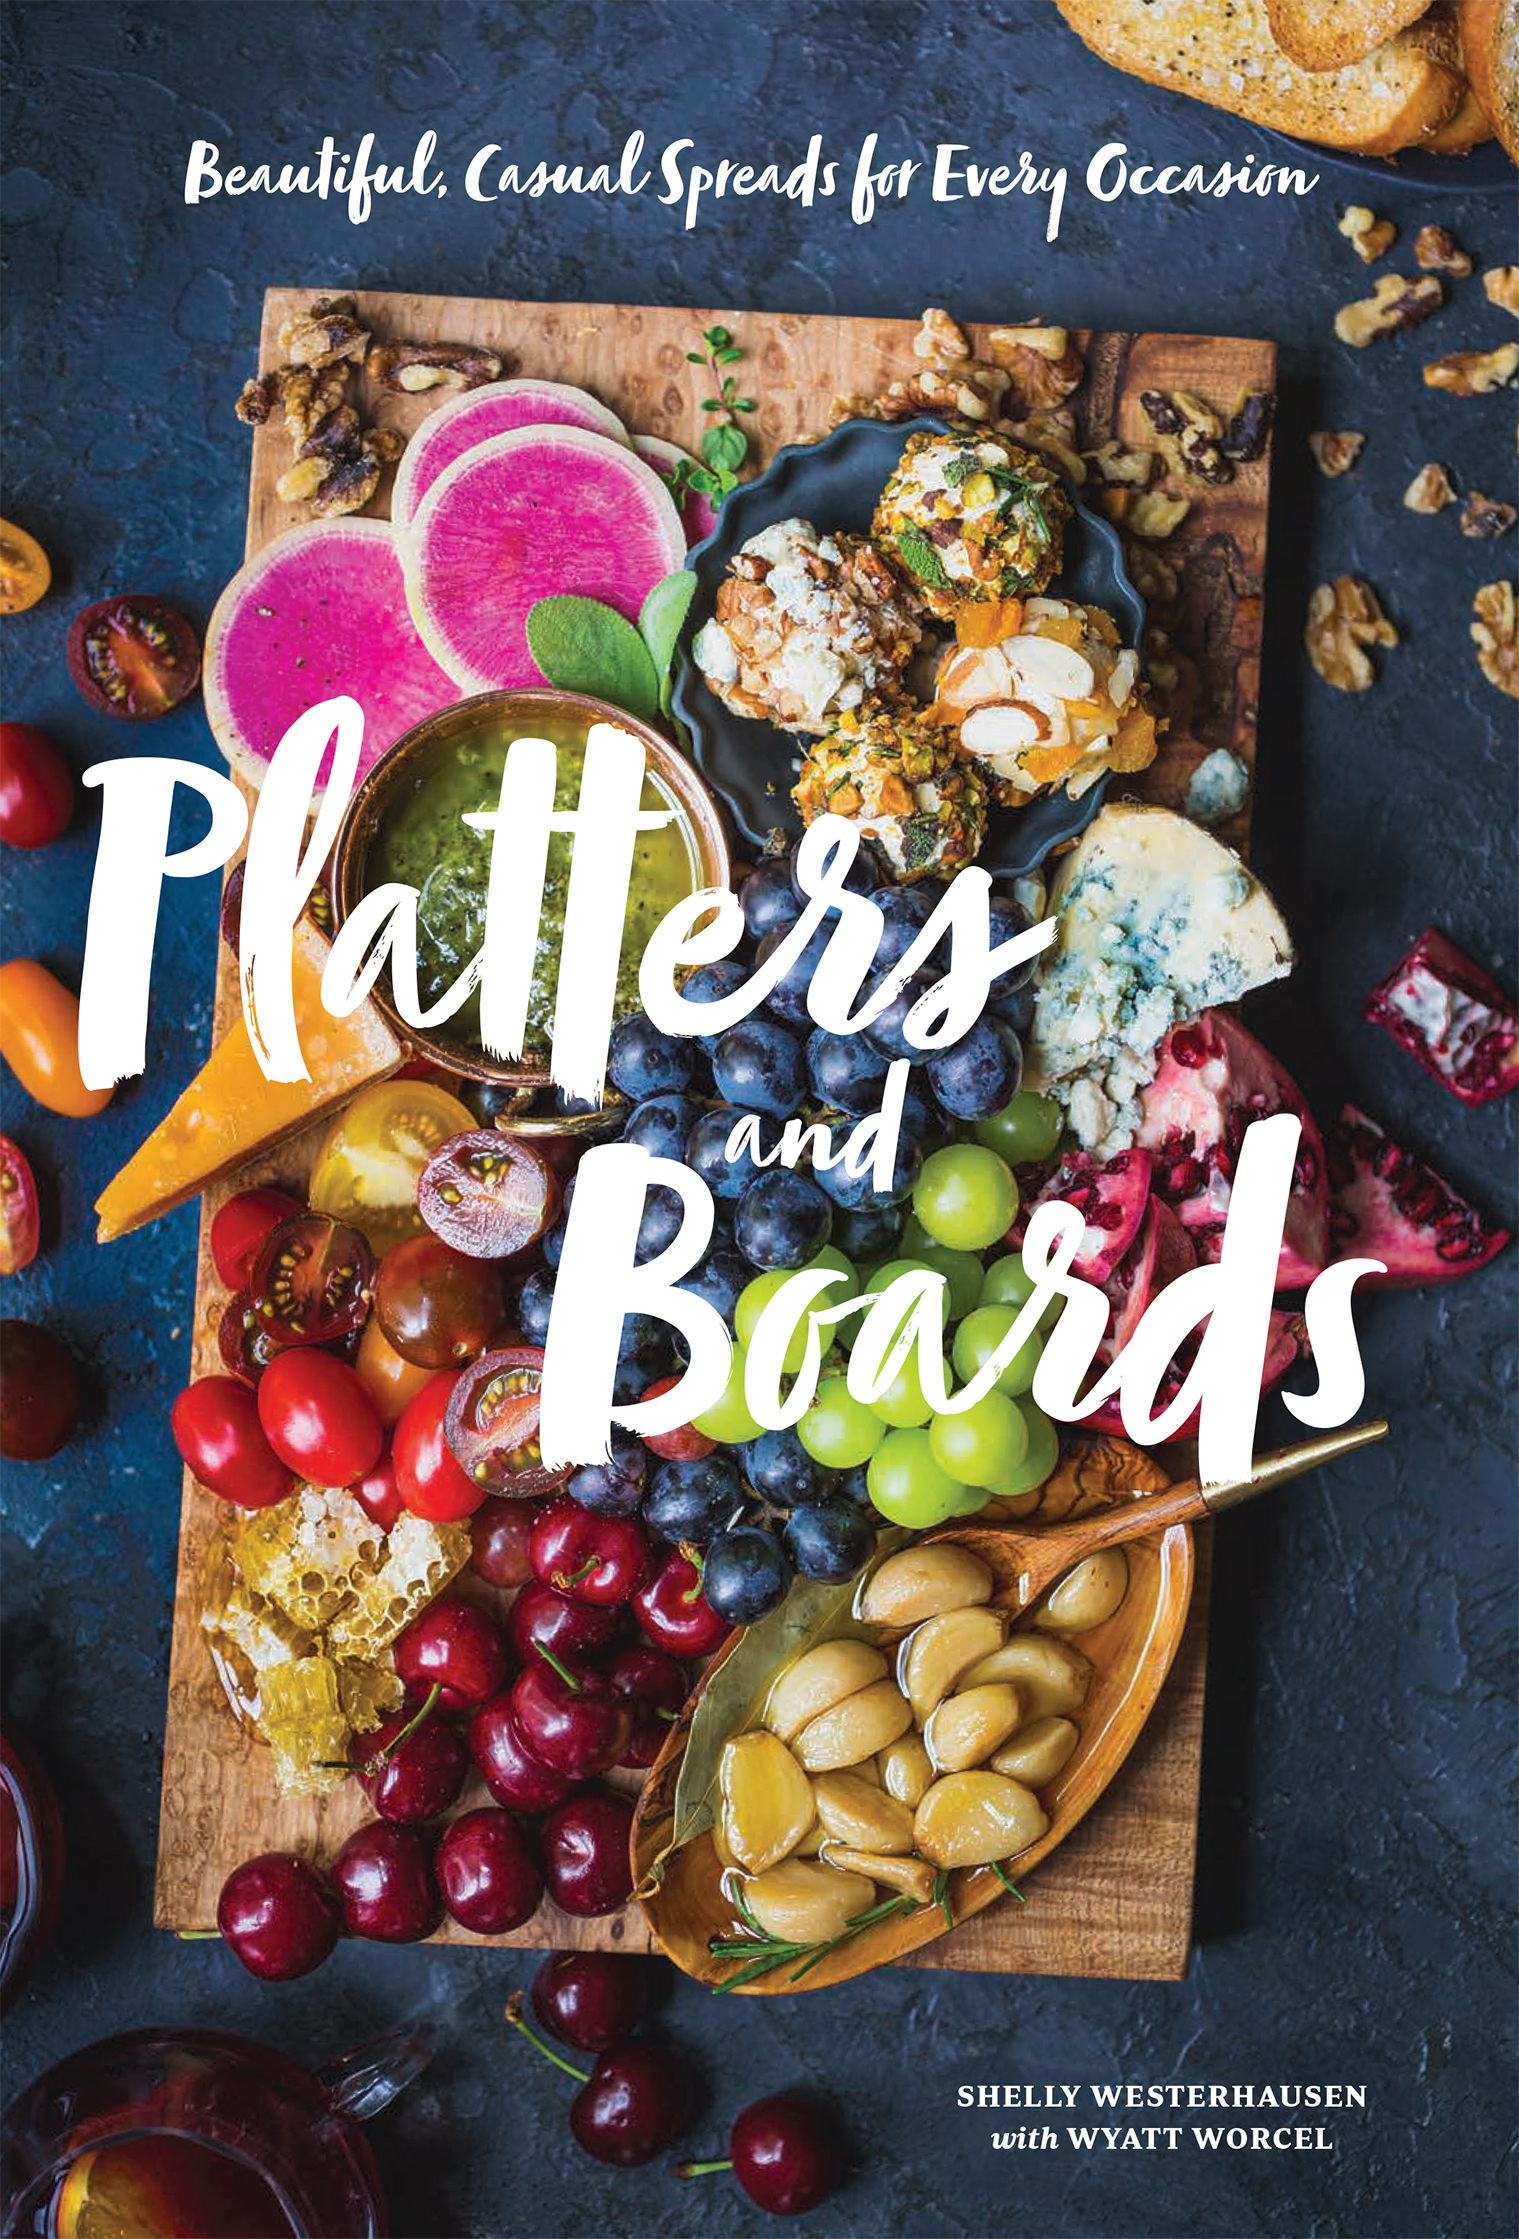 Introducing the Platters & Boards Cookbook!